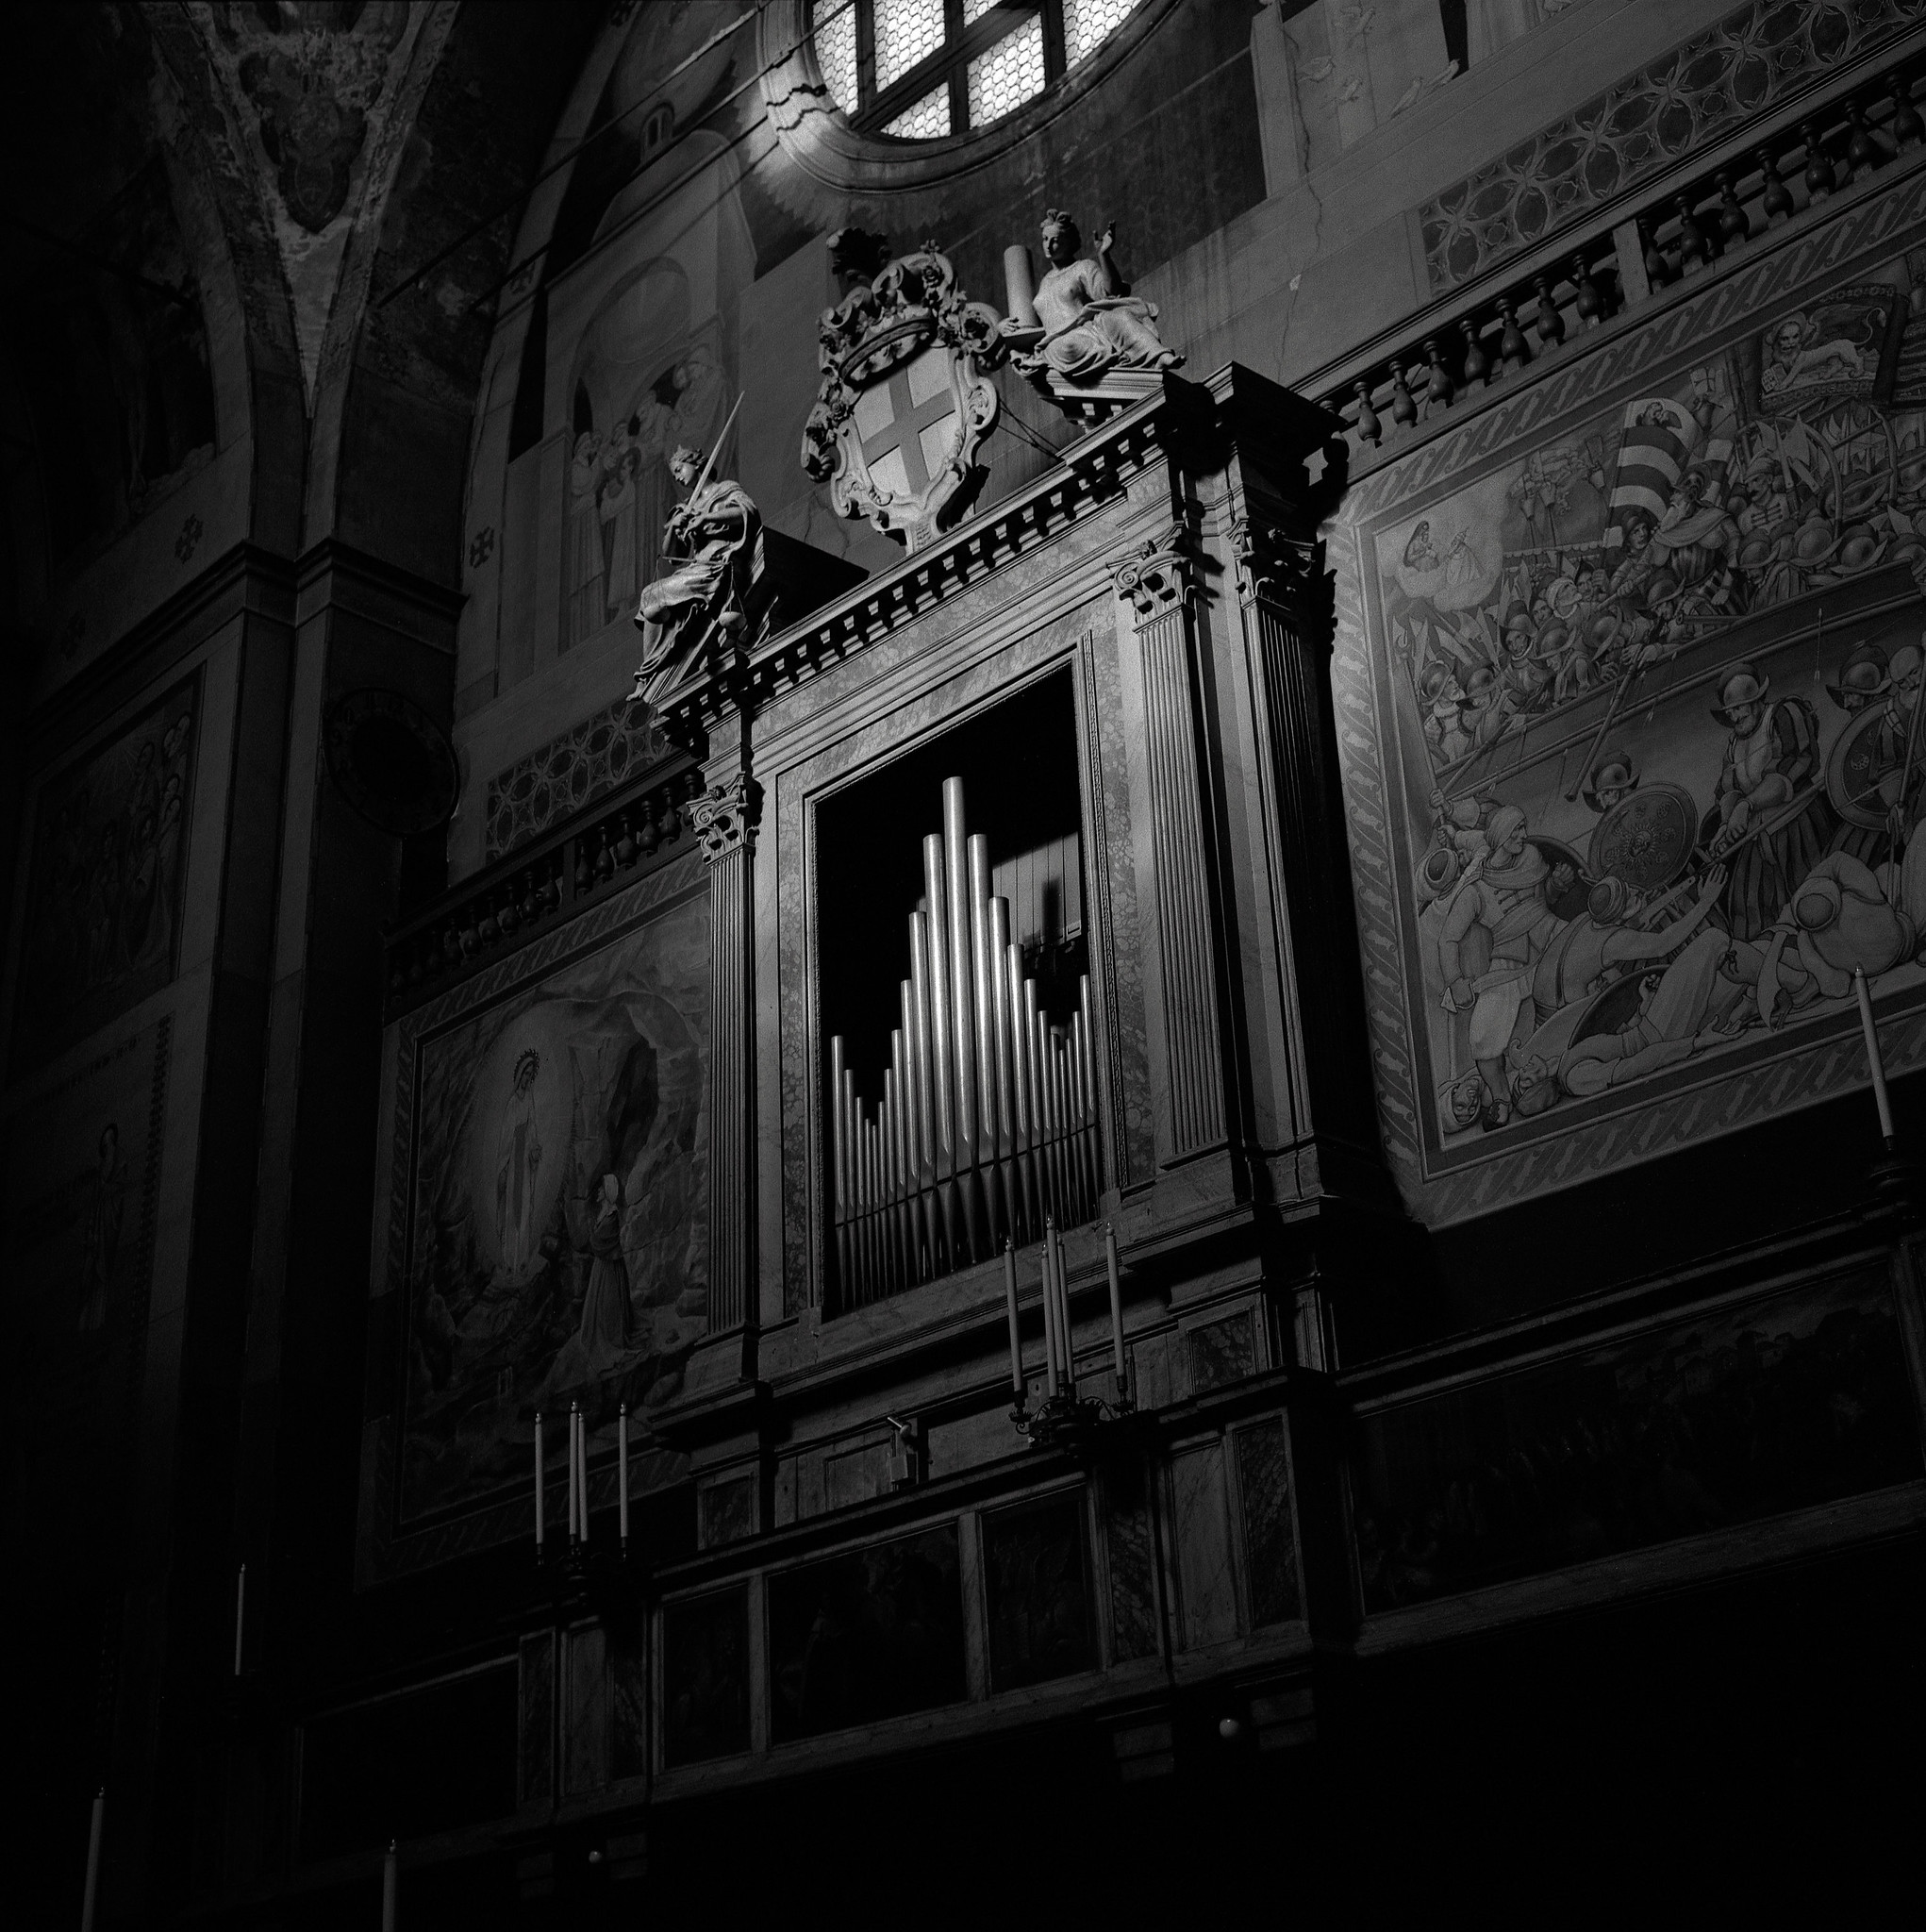 In the Church of Santa Maria del Carmine, Padua, Italy